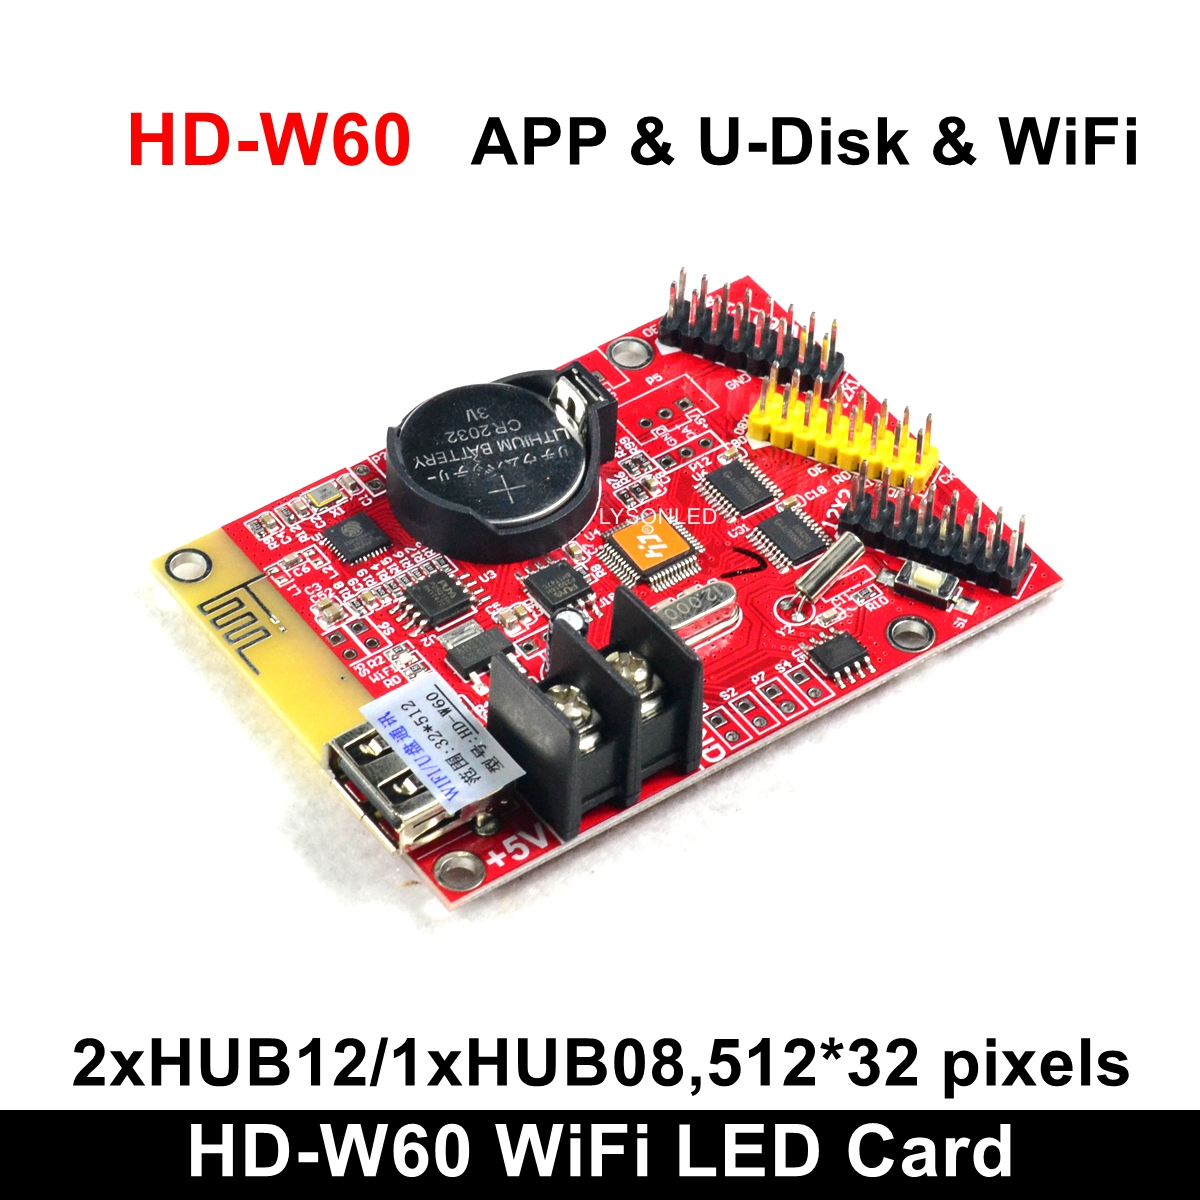 Huidu HD-W60 U-Disk Built-in WiFi Single Color Dual Color LED Display Control Card 32x512 Pixels Support (W61/W62/W63 on Sale)Huidu HD-W60 U-Disk Built-in WiFi Single Color Dual Color LED Display Control Card 32x512 Pixels Support (W61/W62/W63 on Sale)